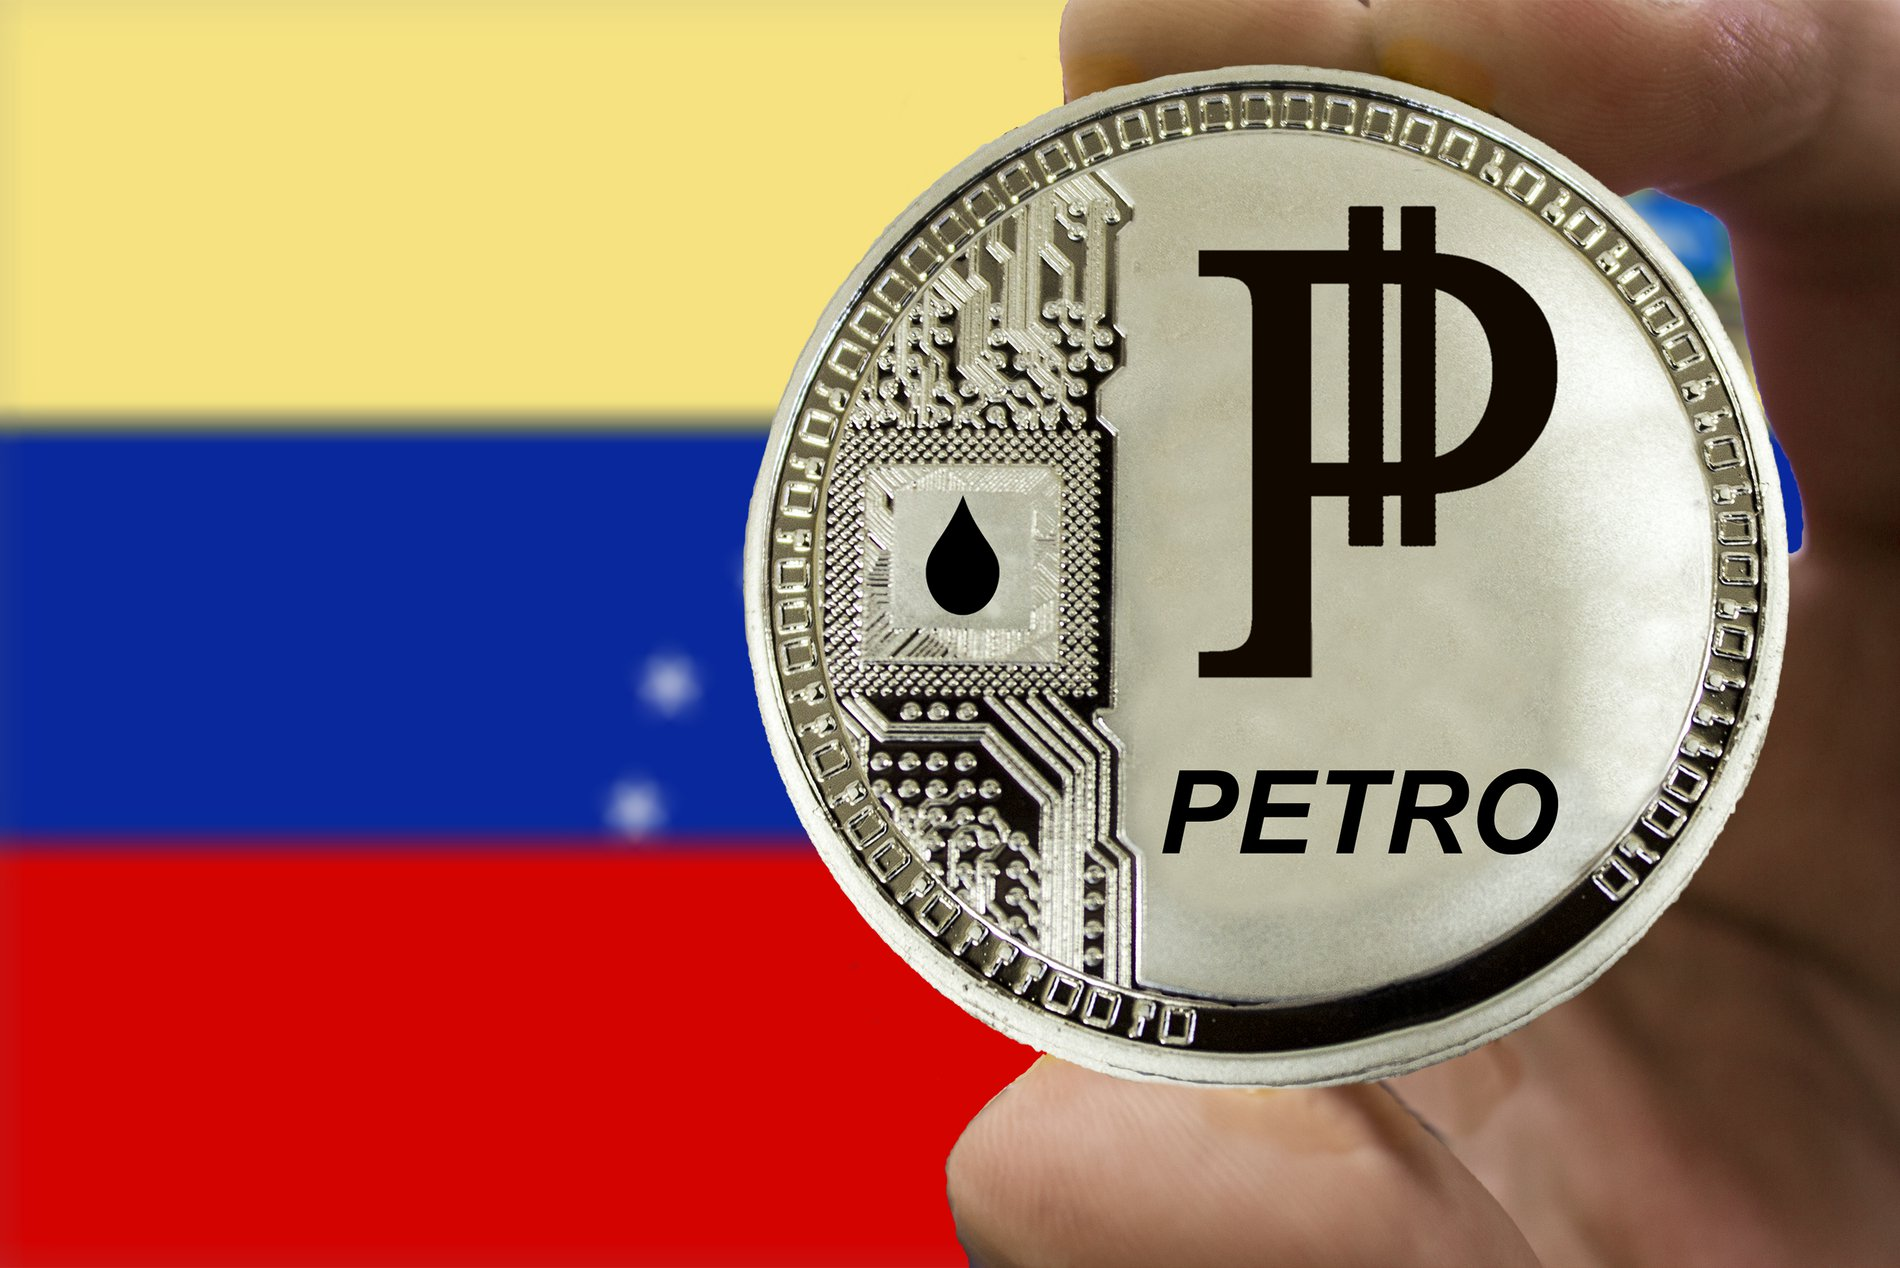 Petro national currency, a new accounting unit in Venezuela